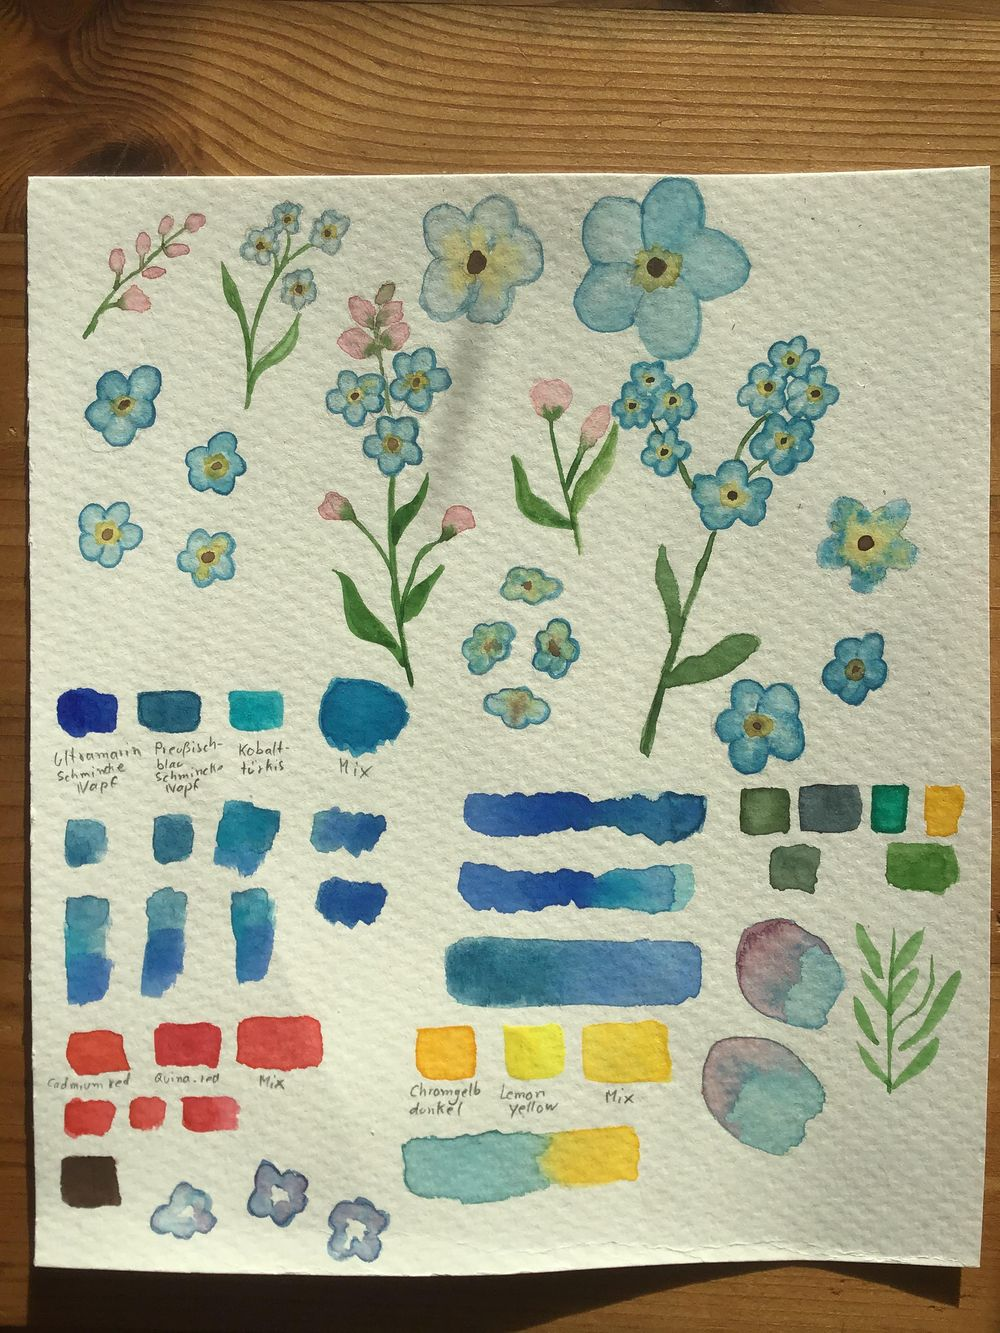 Forgetmenot - image 1 - student project